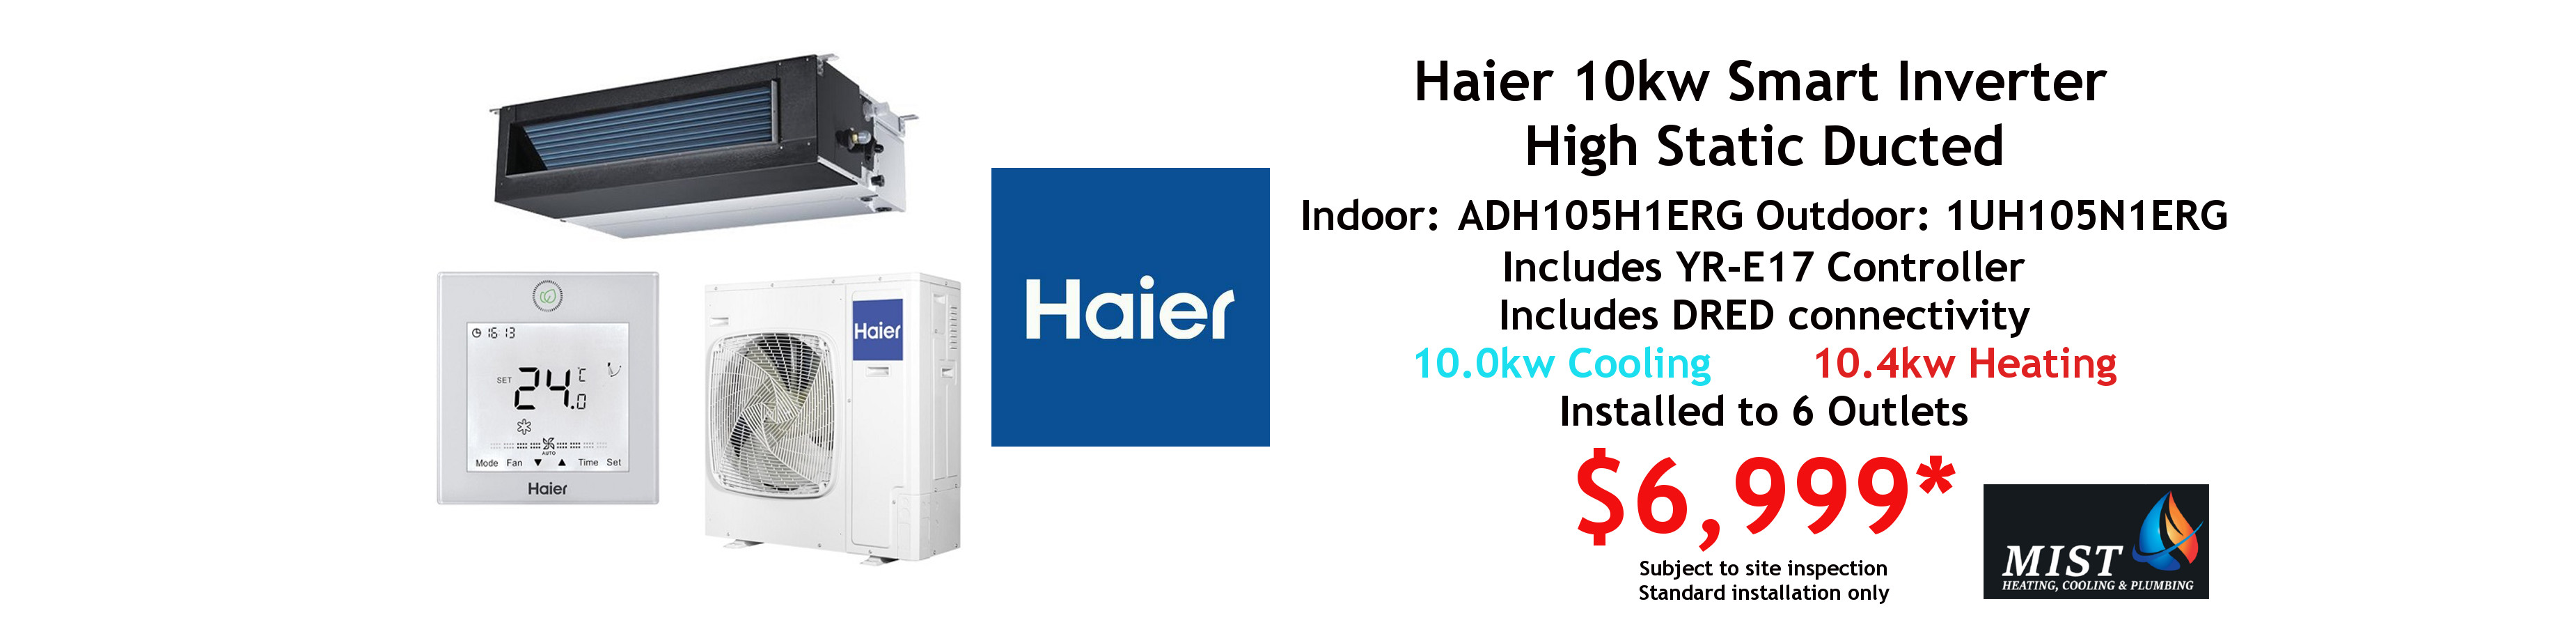 haier 10kw ducted special